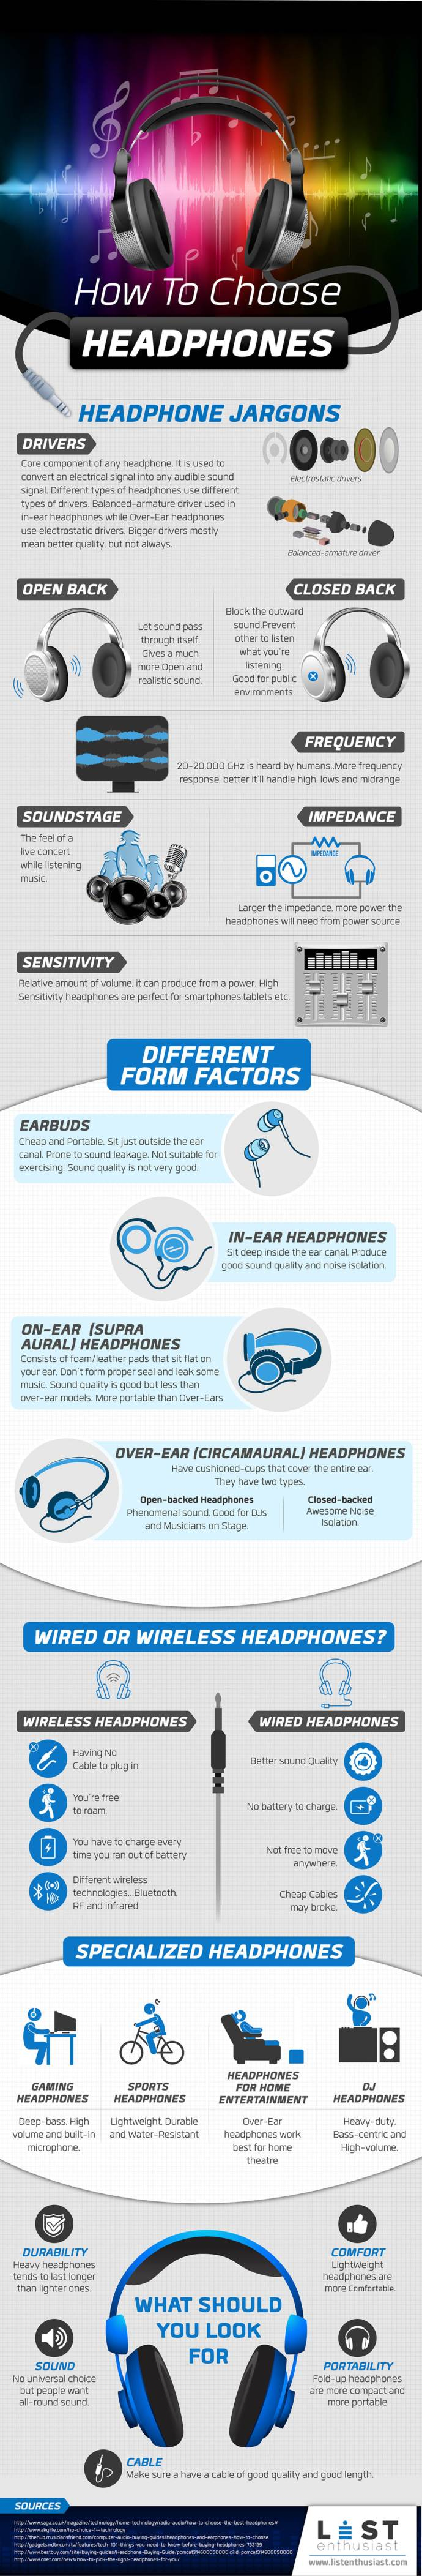 how-to-choose-headphones